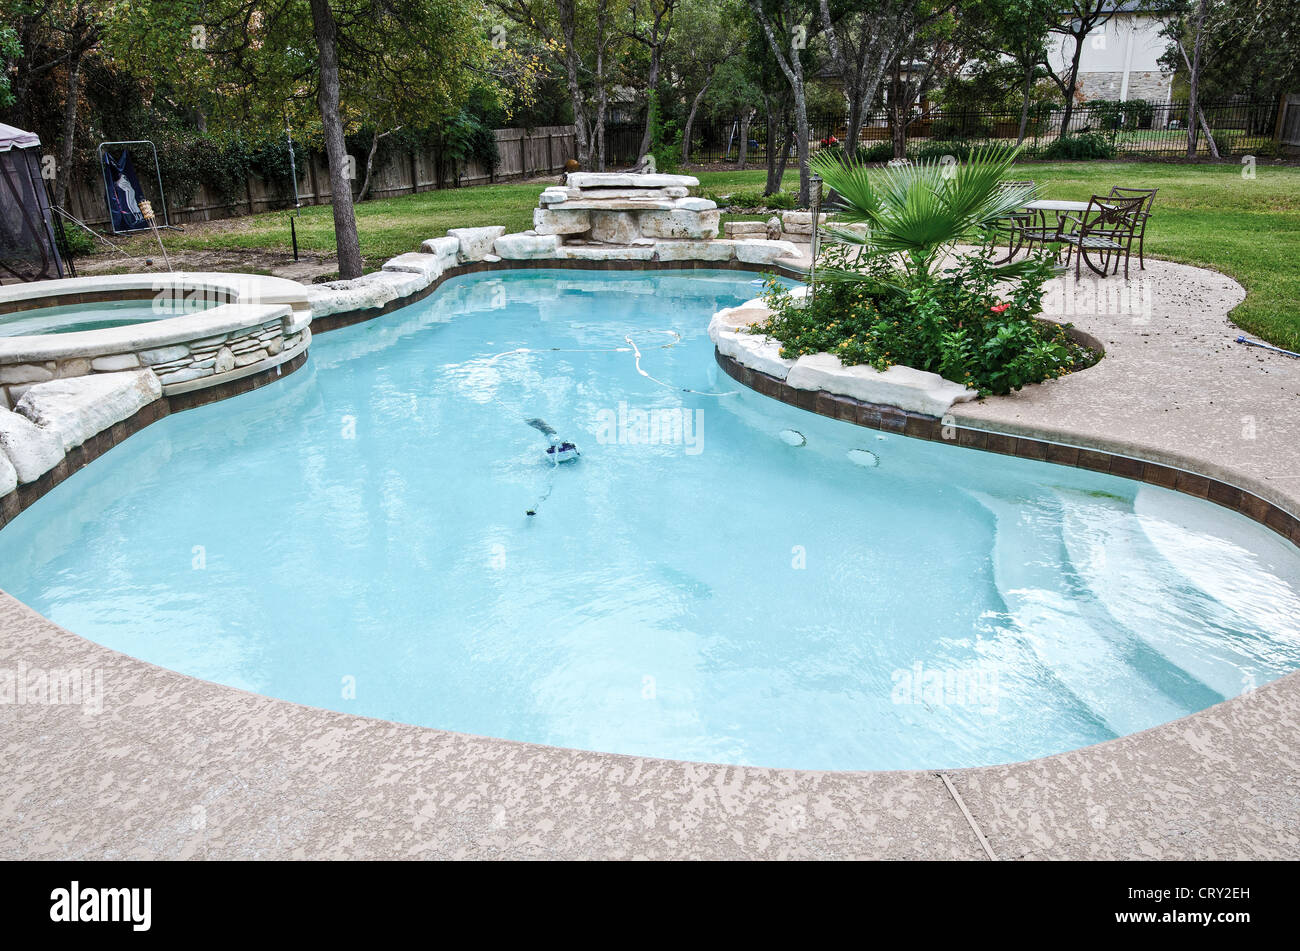 Kidney Shaped Swimming Pool With Hot Tub And Flora And